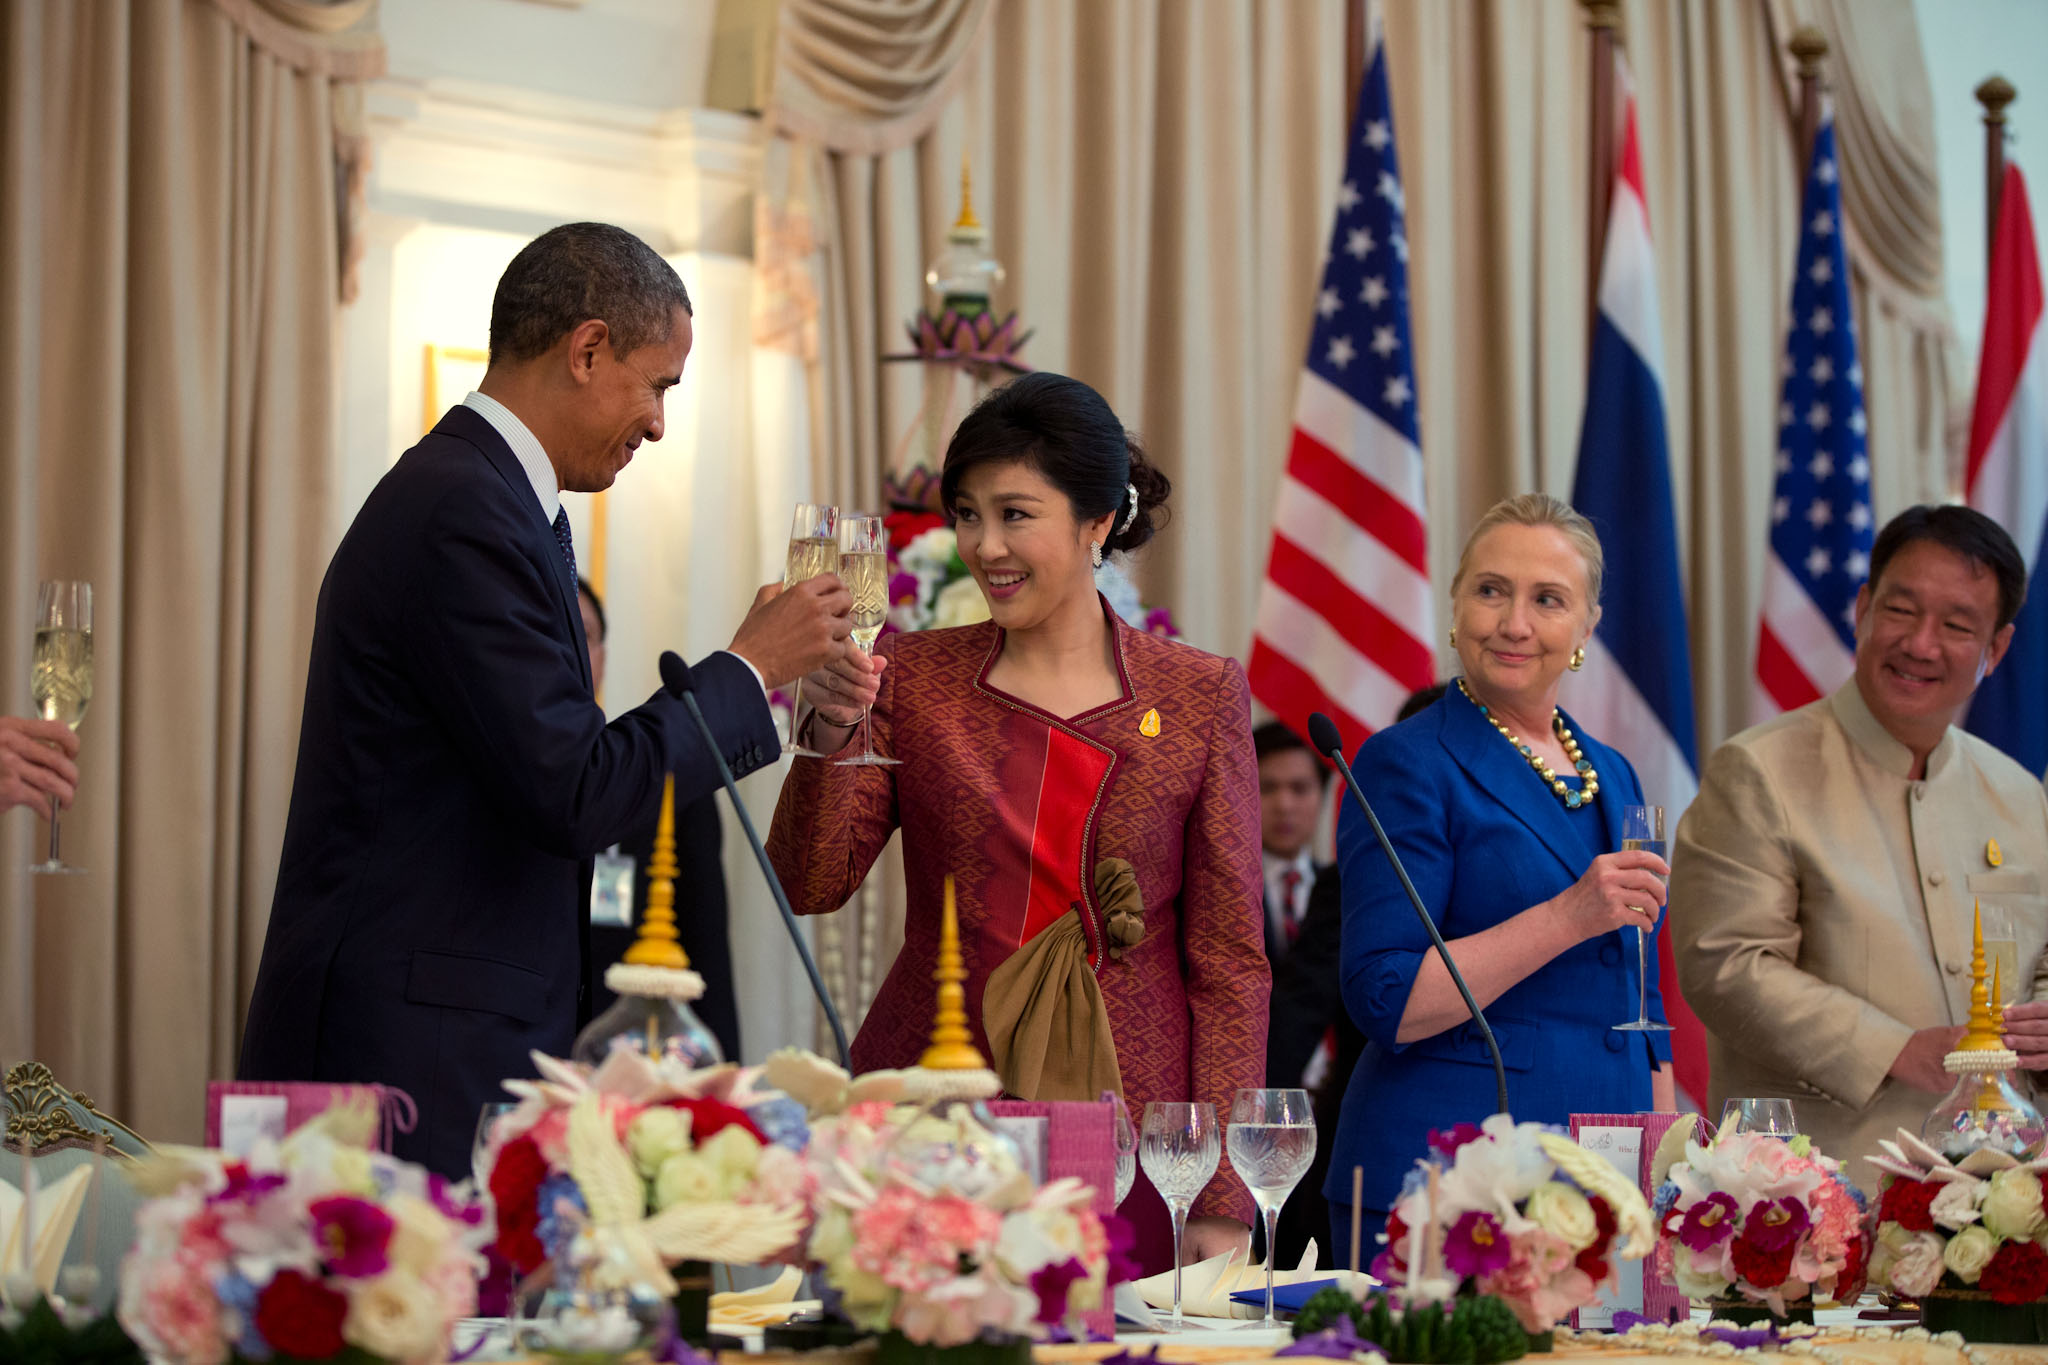 Thai Prime Minister Yingluck Shinawatra offers a toast during an official dinner with President Obama (November 18, 2012)